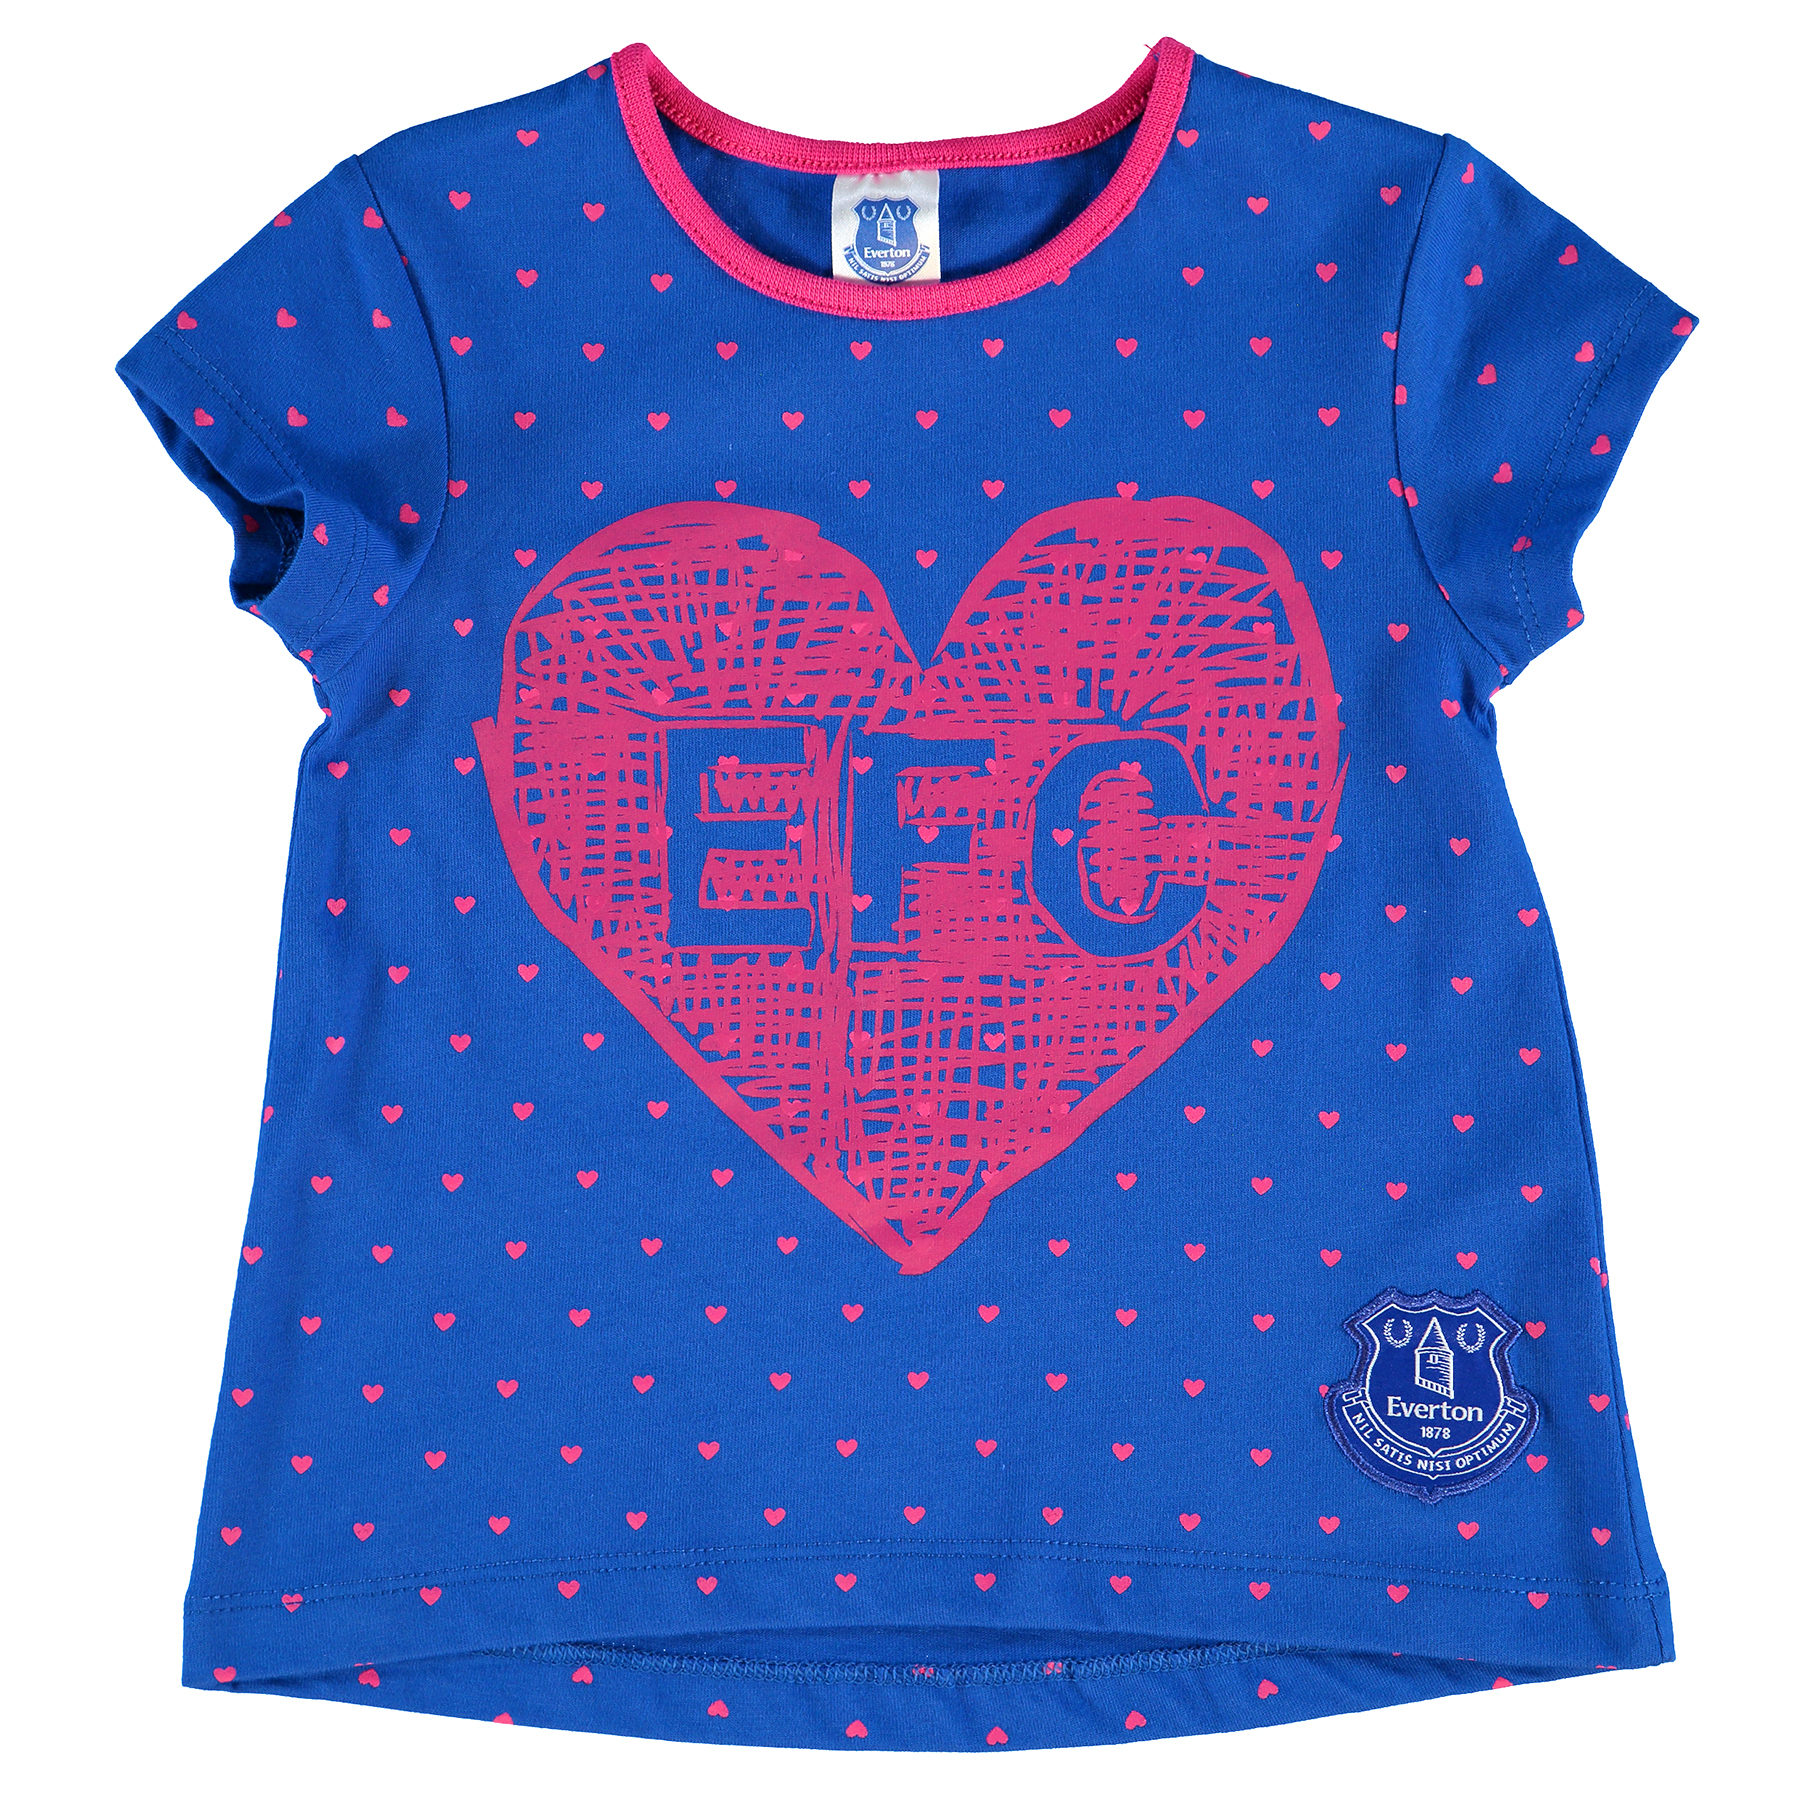 Everton Forever T-Shirt - Royal/Pink - Baby